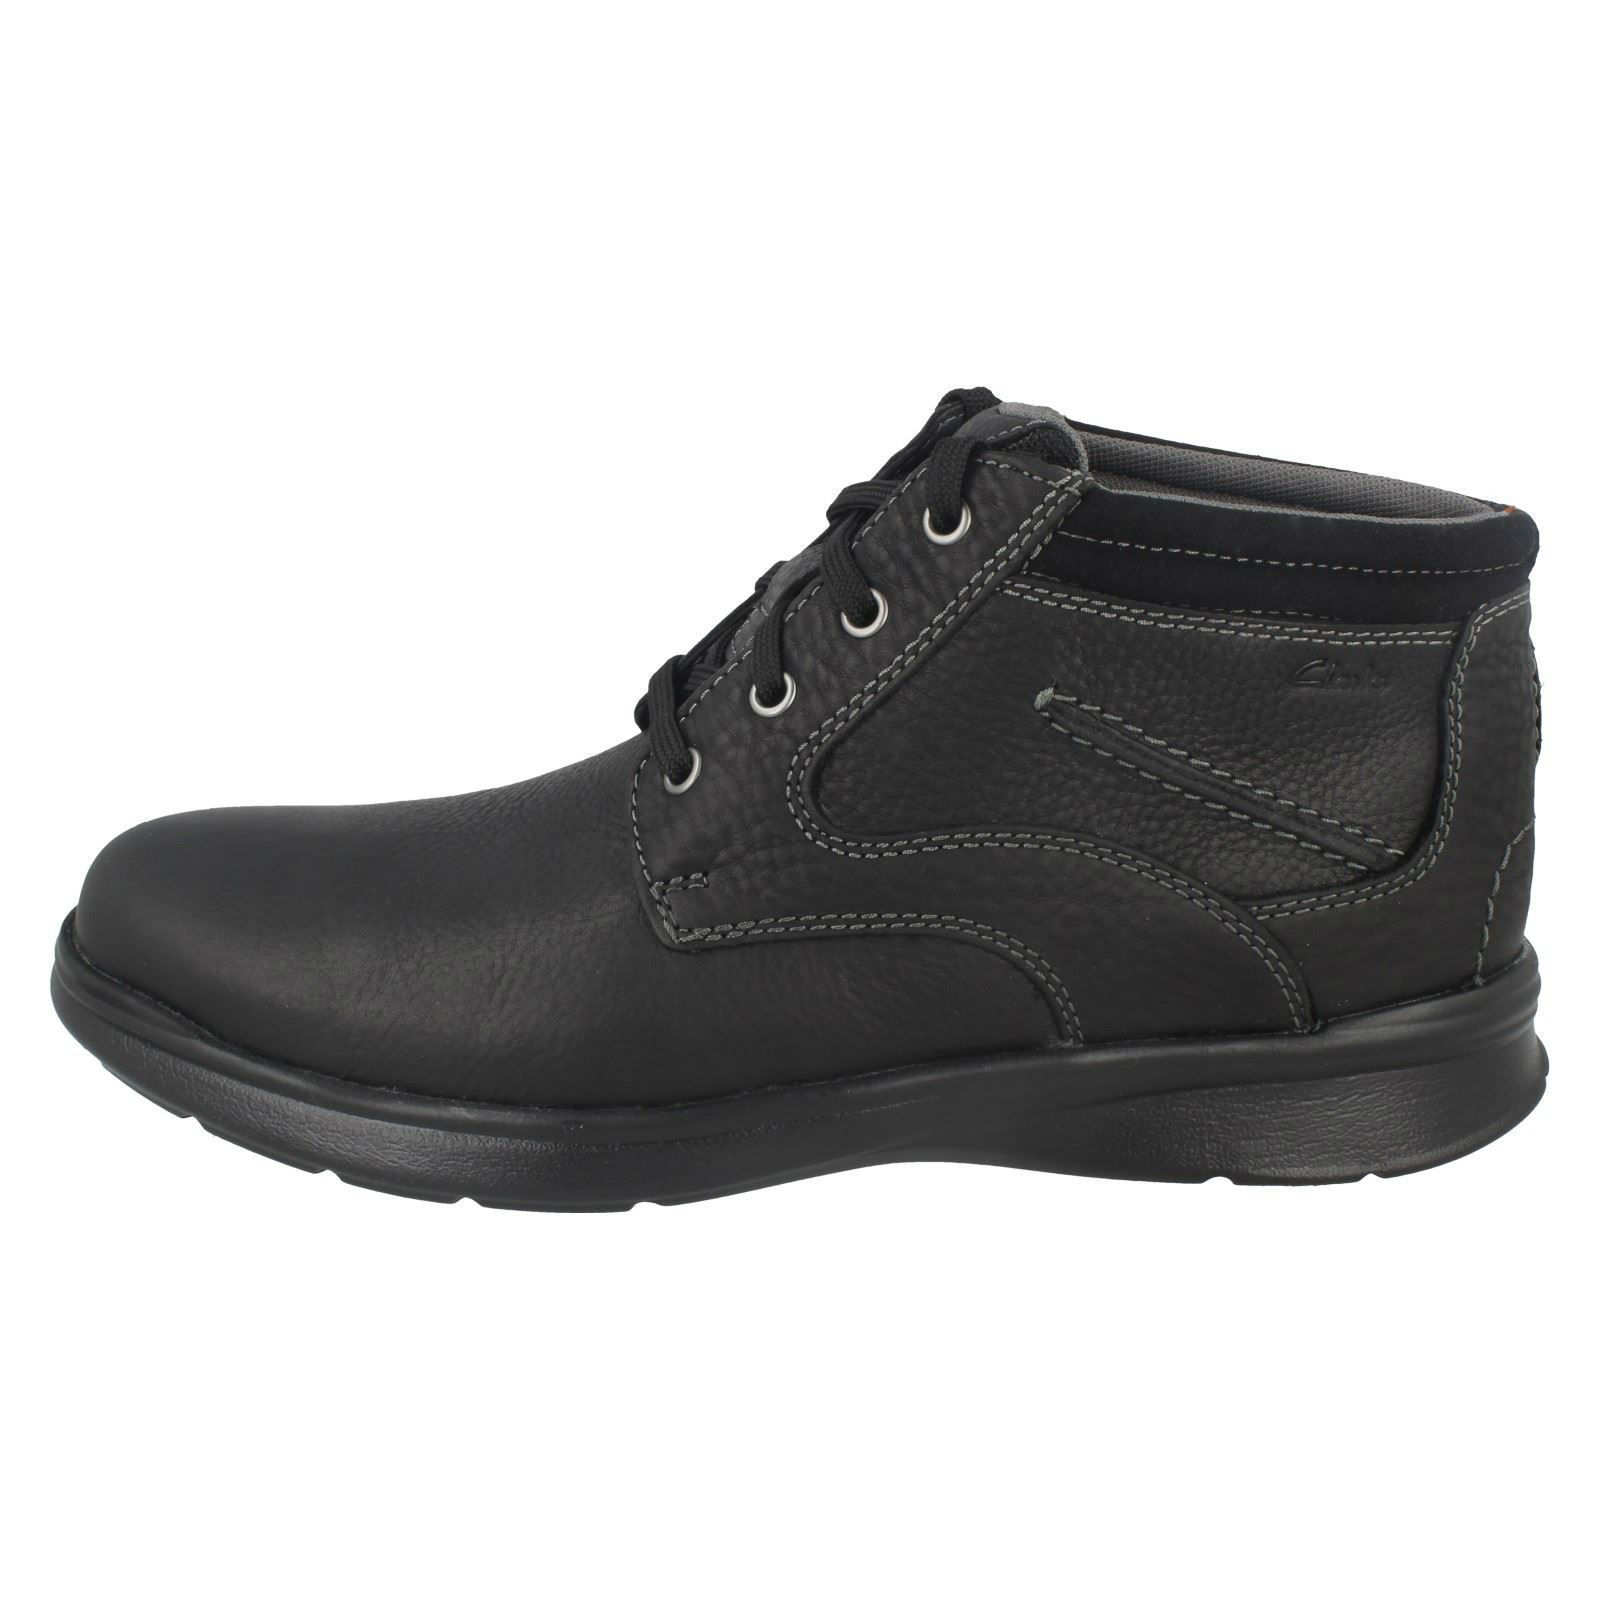 Mens-Clarks-Cotrell-Rise-Casual-Lace-Up-Ankle-Boots thumbnail 3